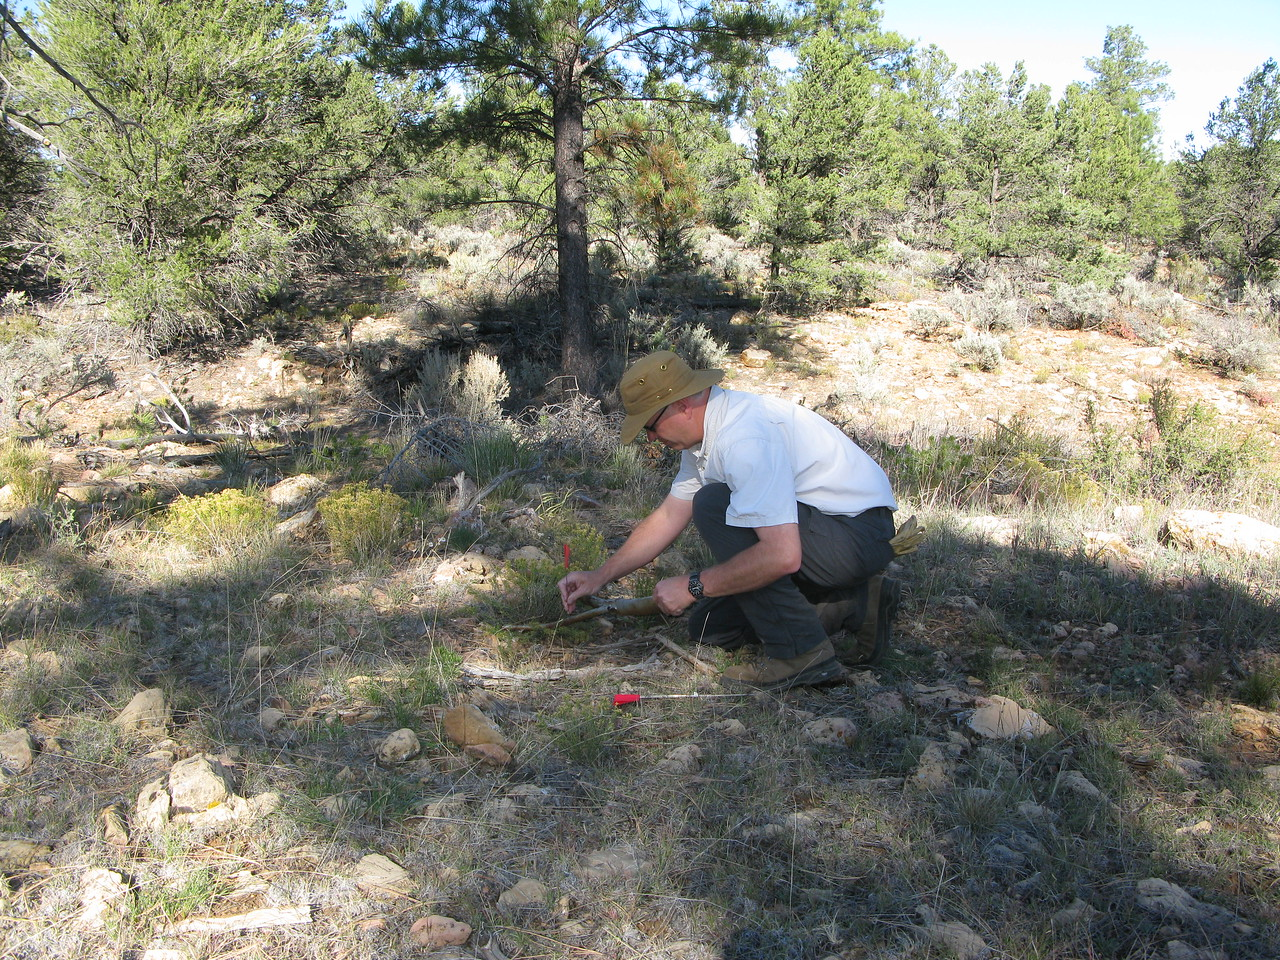 During my survey of the site, I marked aircraft wreckage locations with small red flags as well as GPS to map the site.